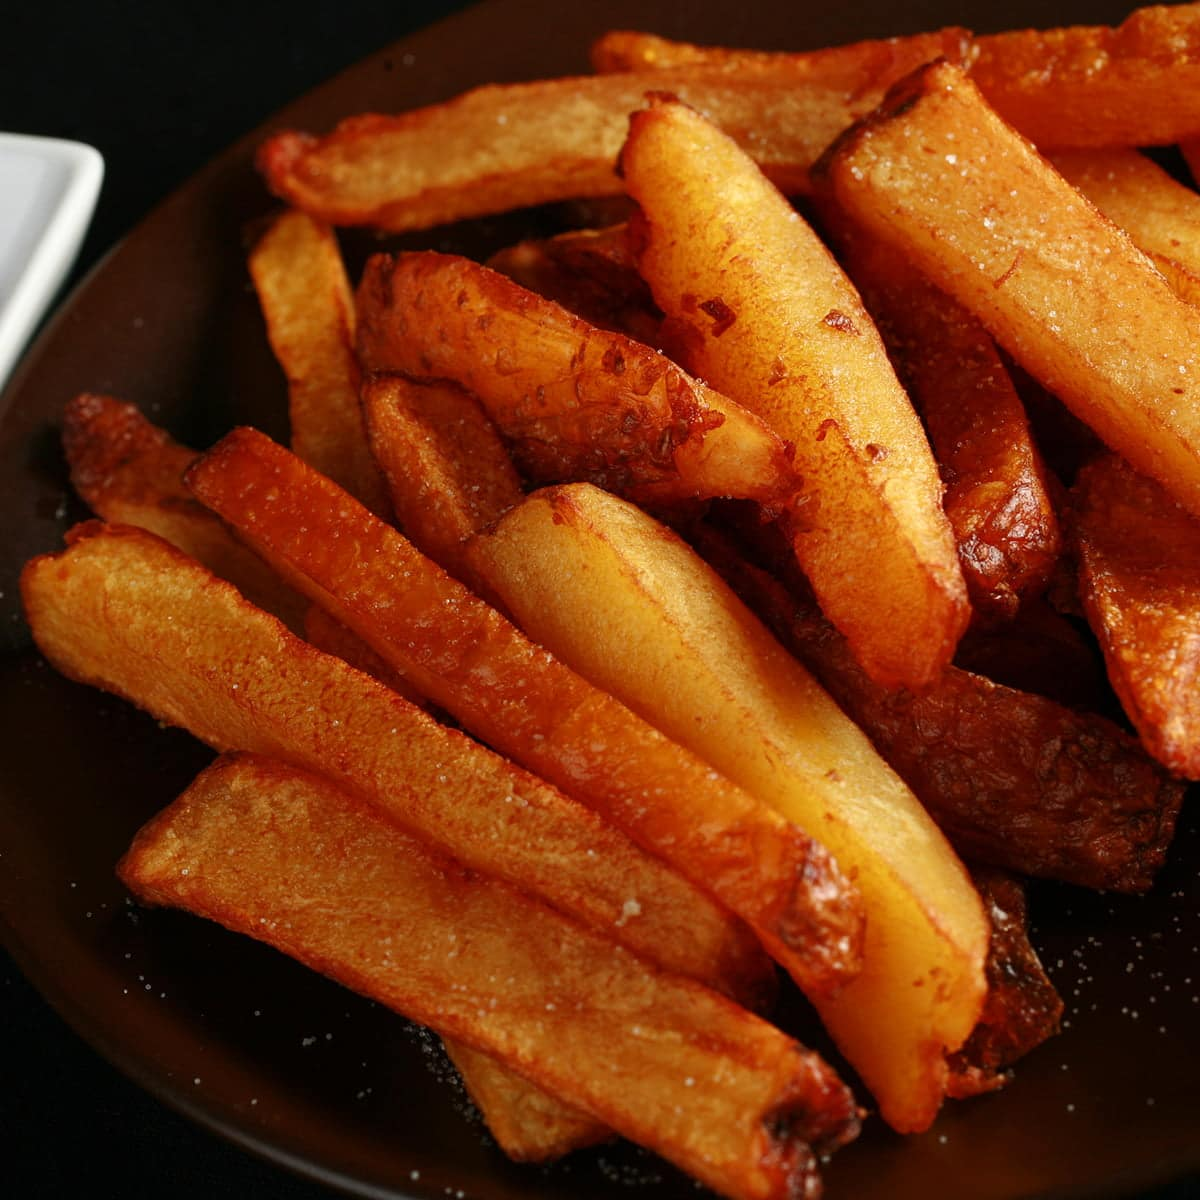 A plate of smoked french fries, with a small bowl of ketchup on the side.